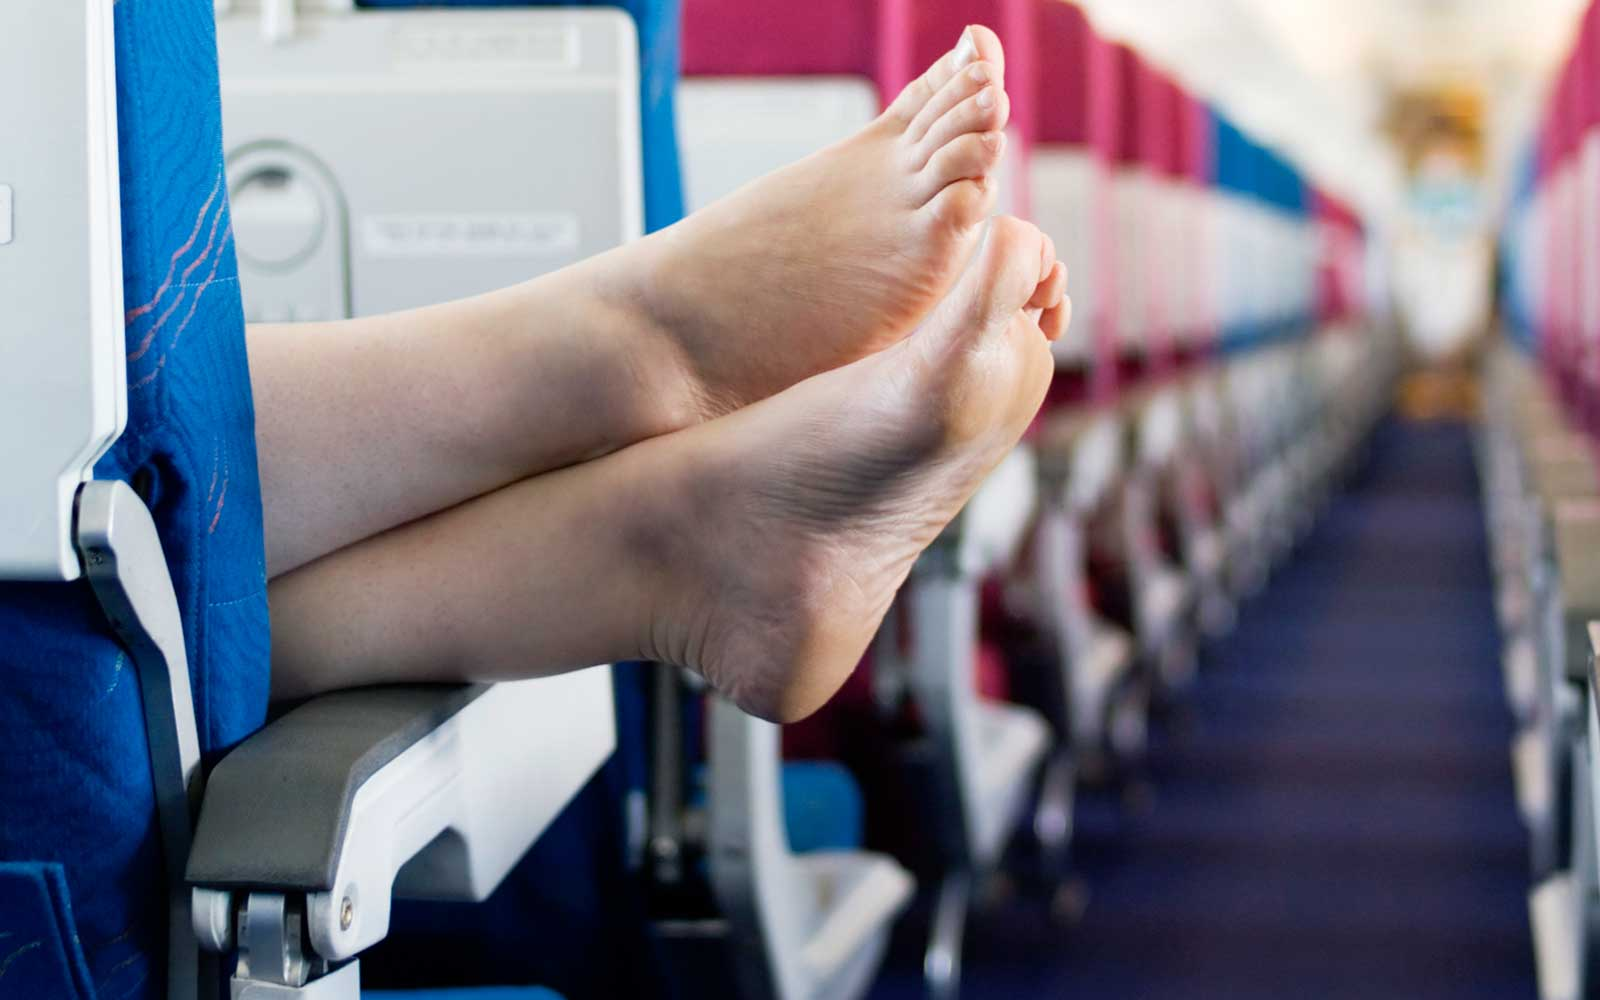 Airplane passenger without shoes